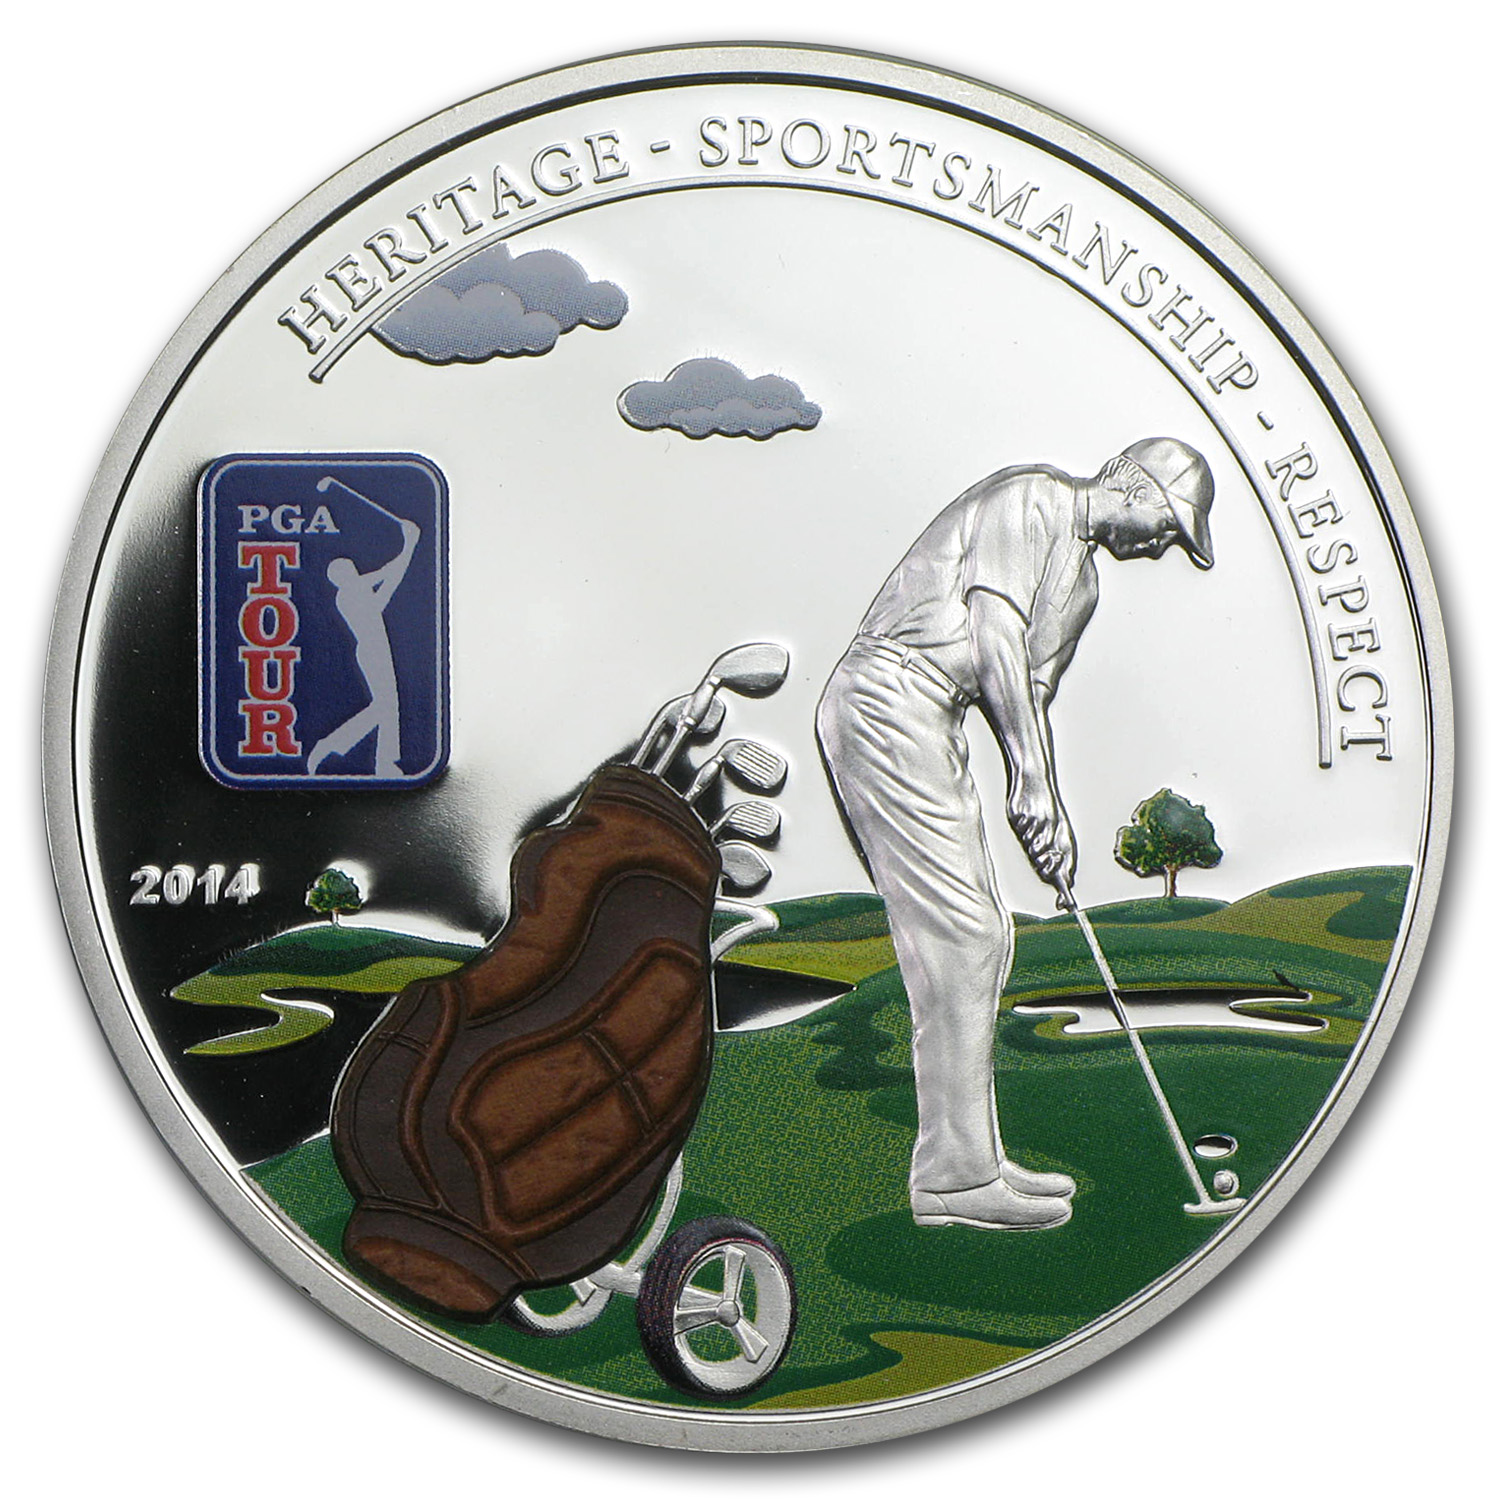 2014 Cook Islands Proof Silver $5 PGA Tour Golf Bag